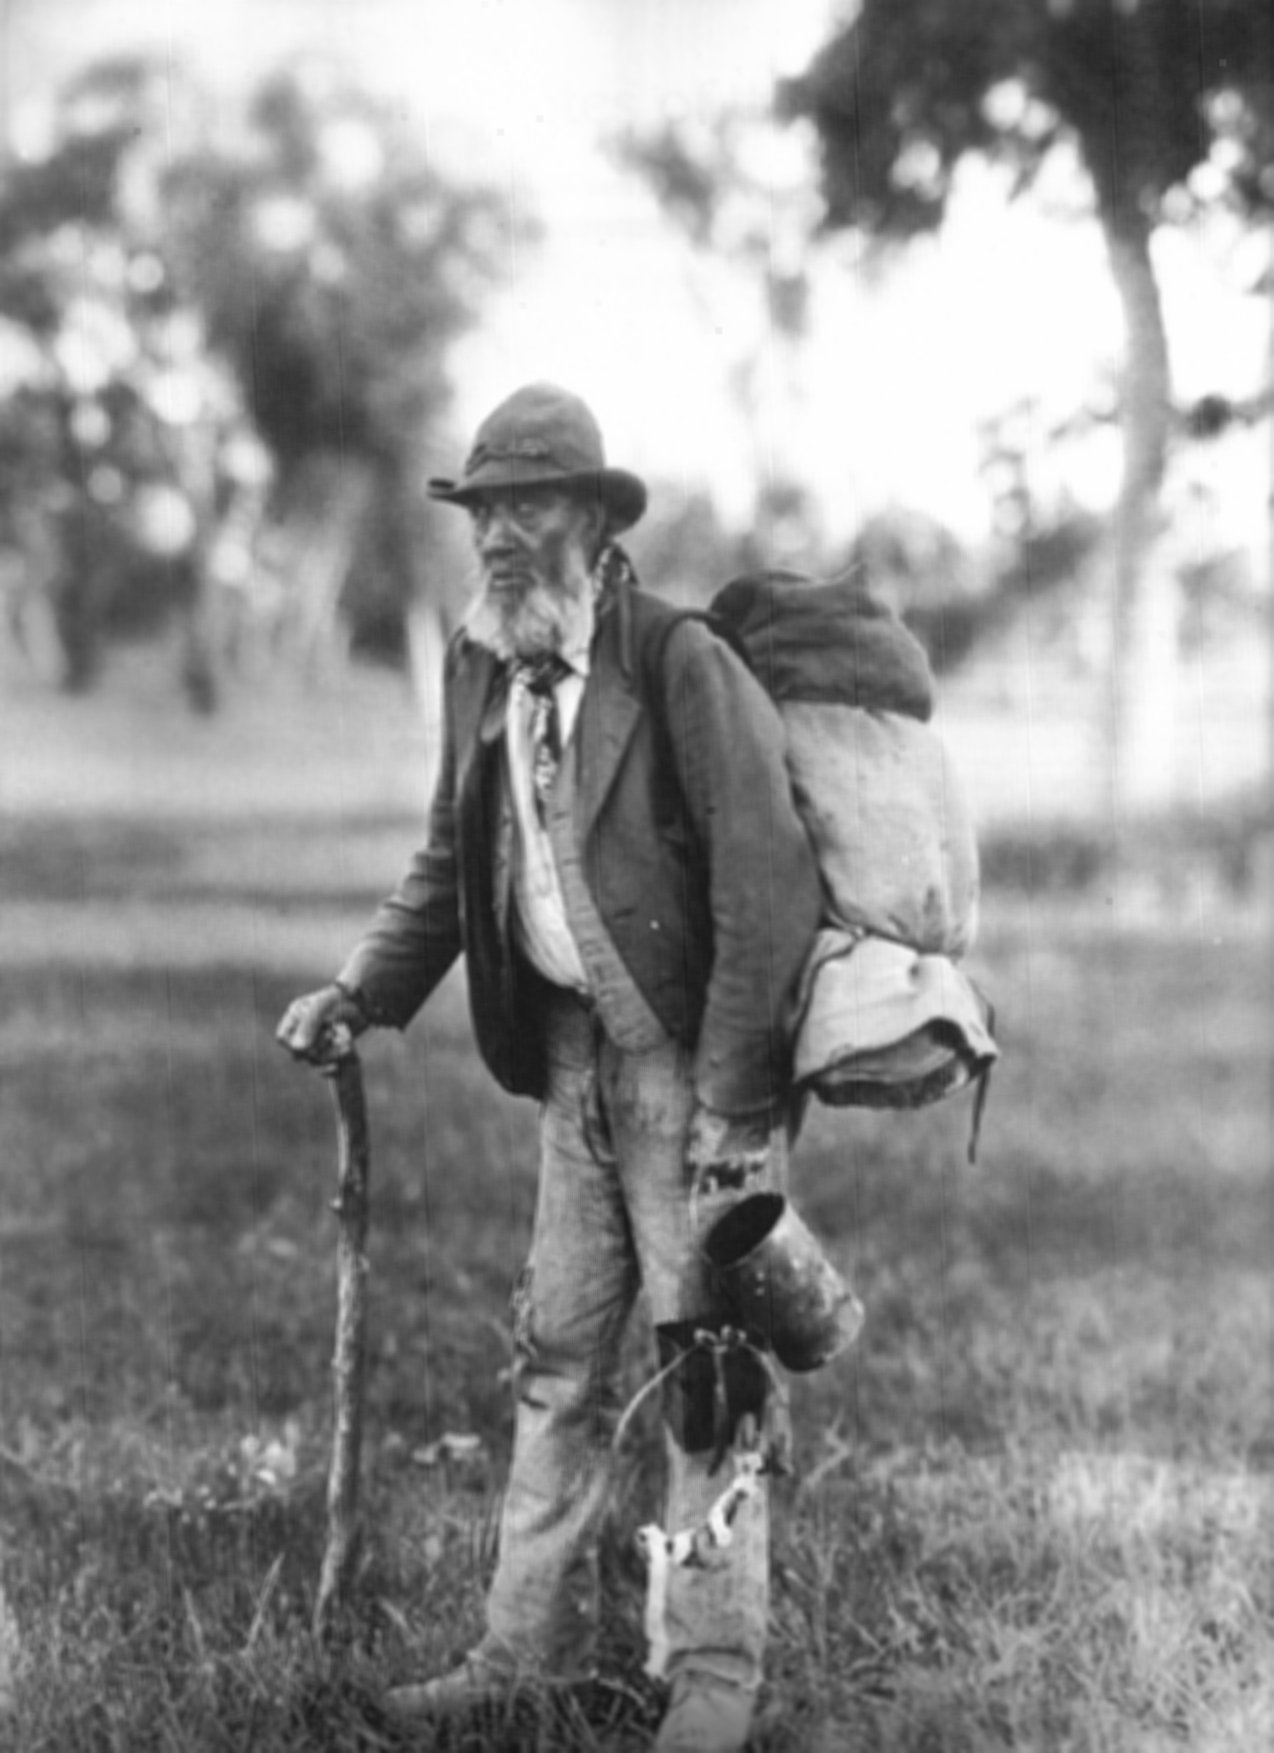 Early Australian swagman - I think we have the same jeans - Wikipedia